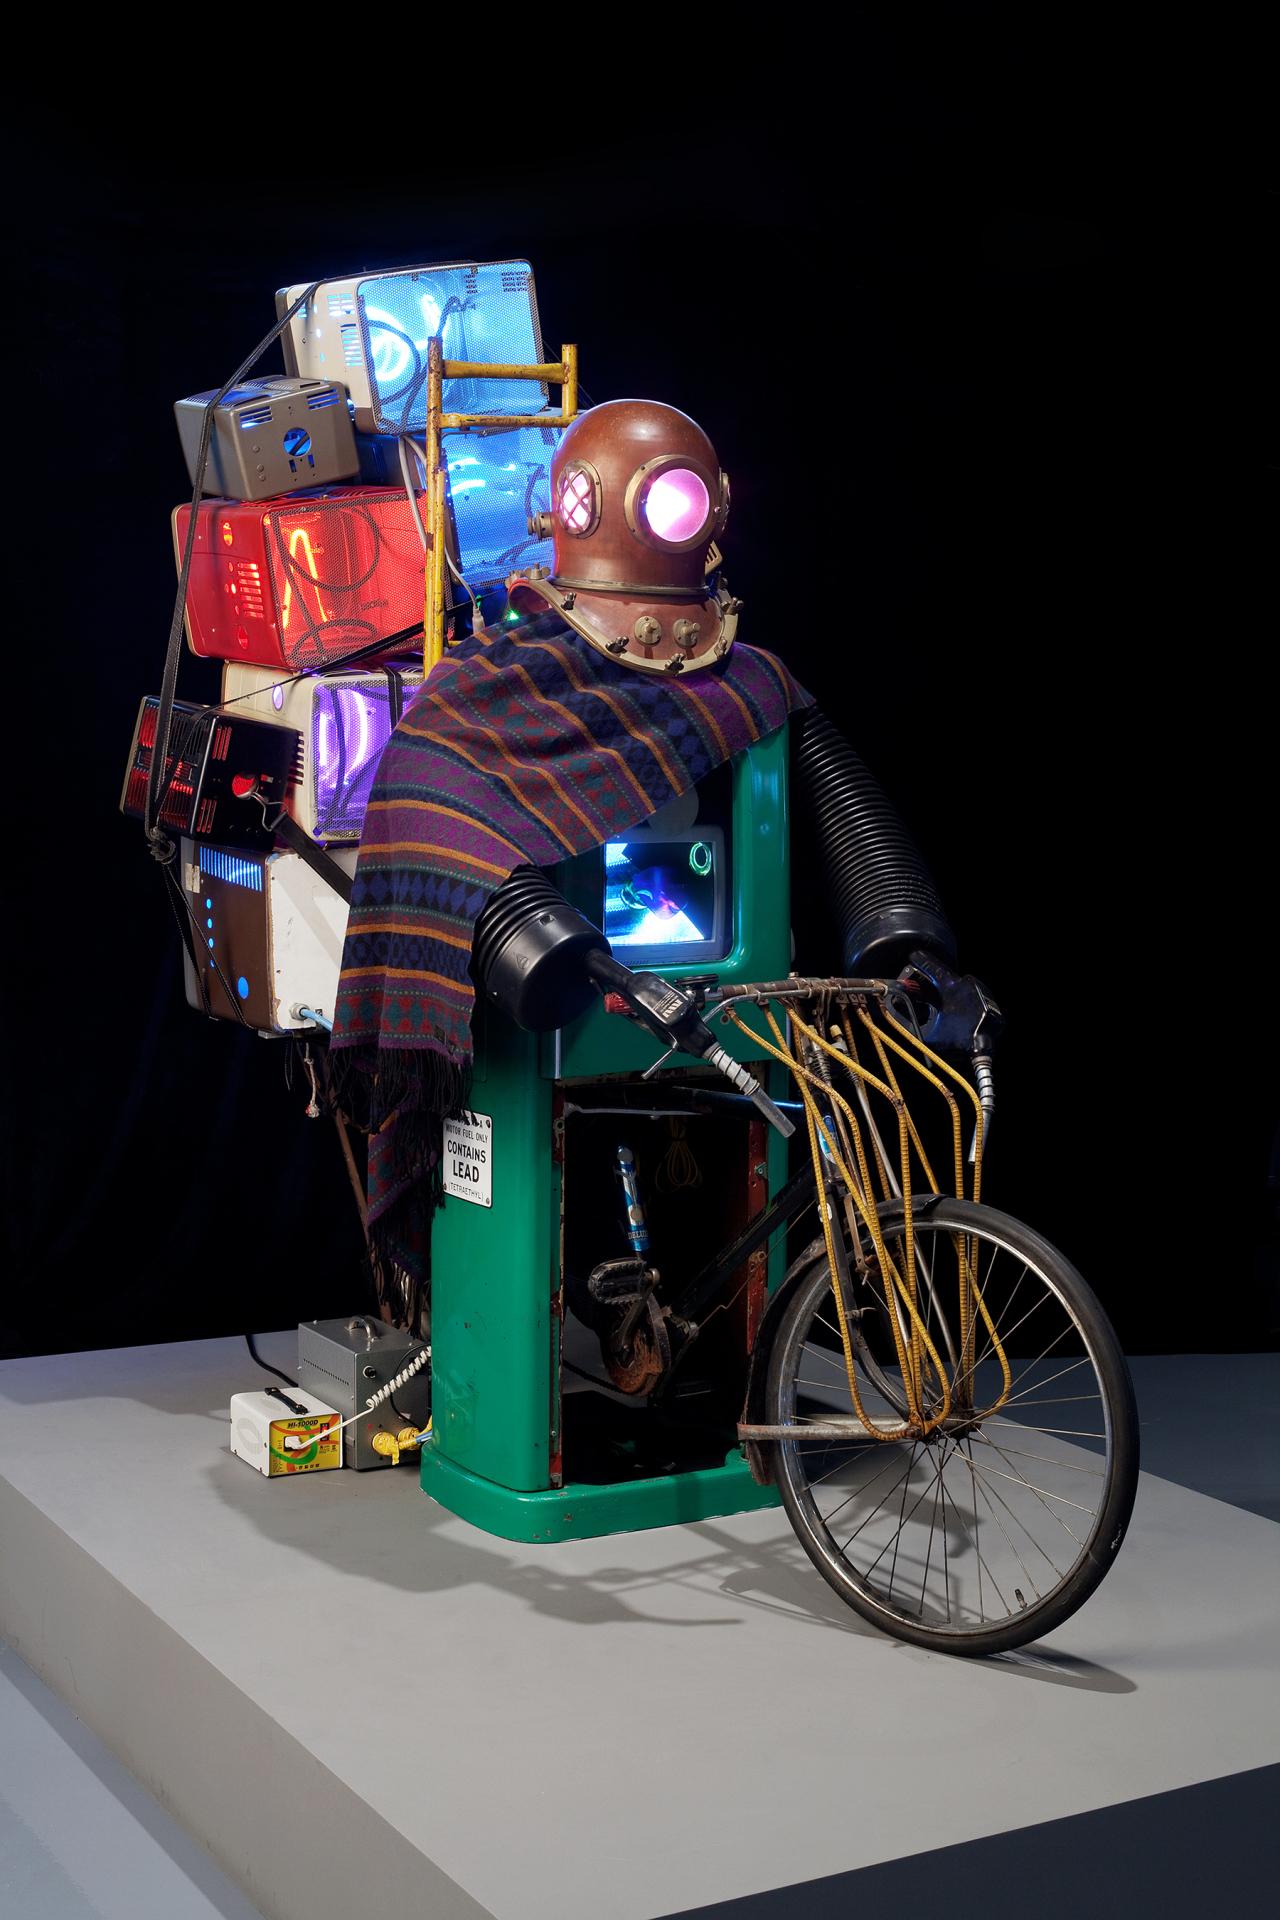 """Paik Nam-june's """"The Rehabilitation of Genghis-Khan"""" (1993) at Nam June Paik Art Center. Genghis-Khan riding a bike with television sets suggests a new era of software development. The robot sculpture was produced for the Venice Biennale in 1993. (Nam June Paik Art Center)"""